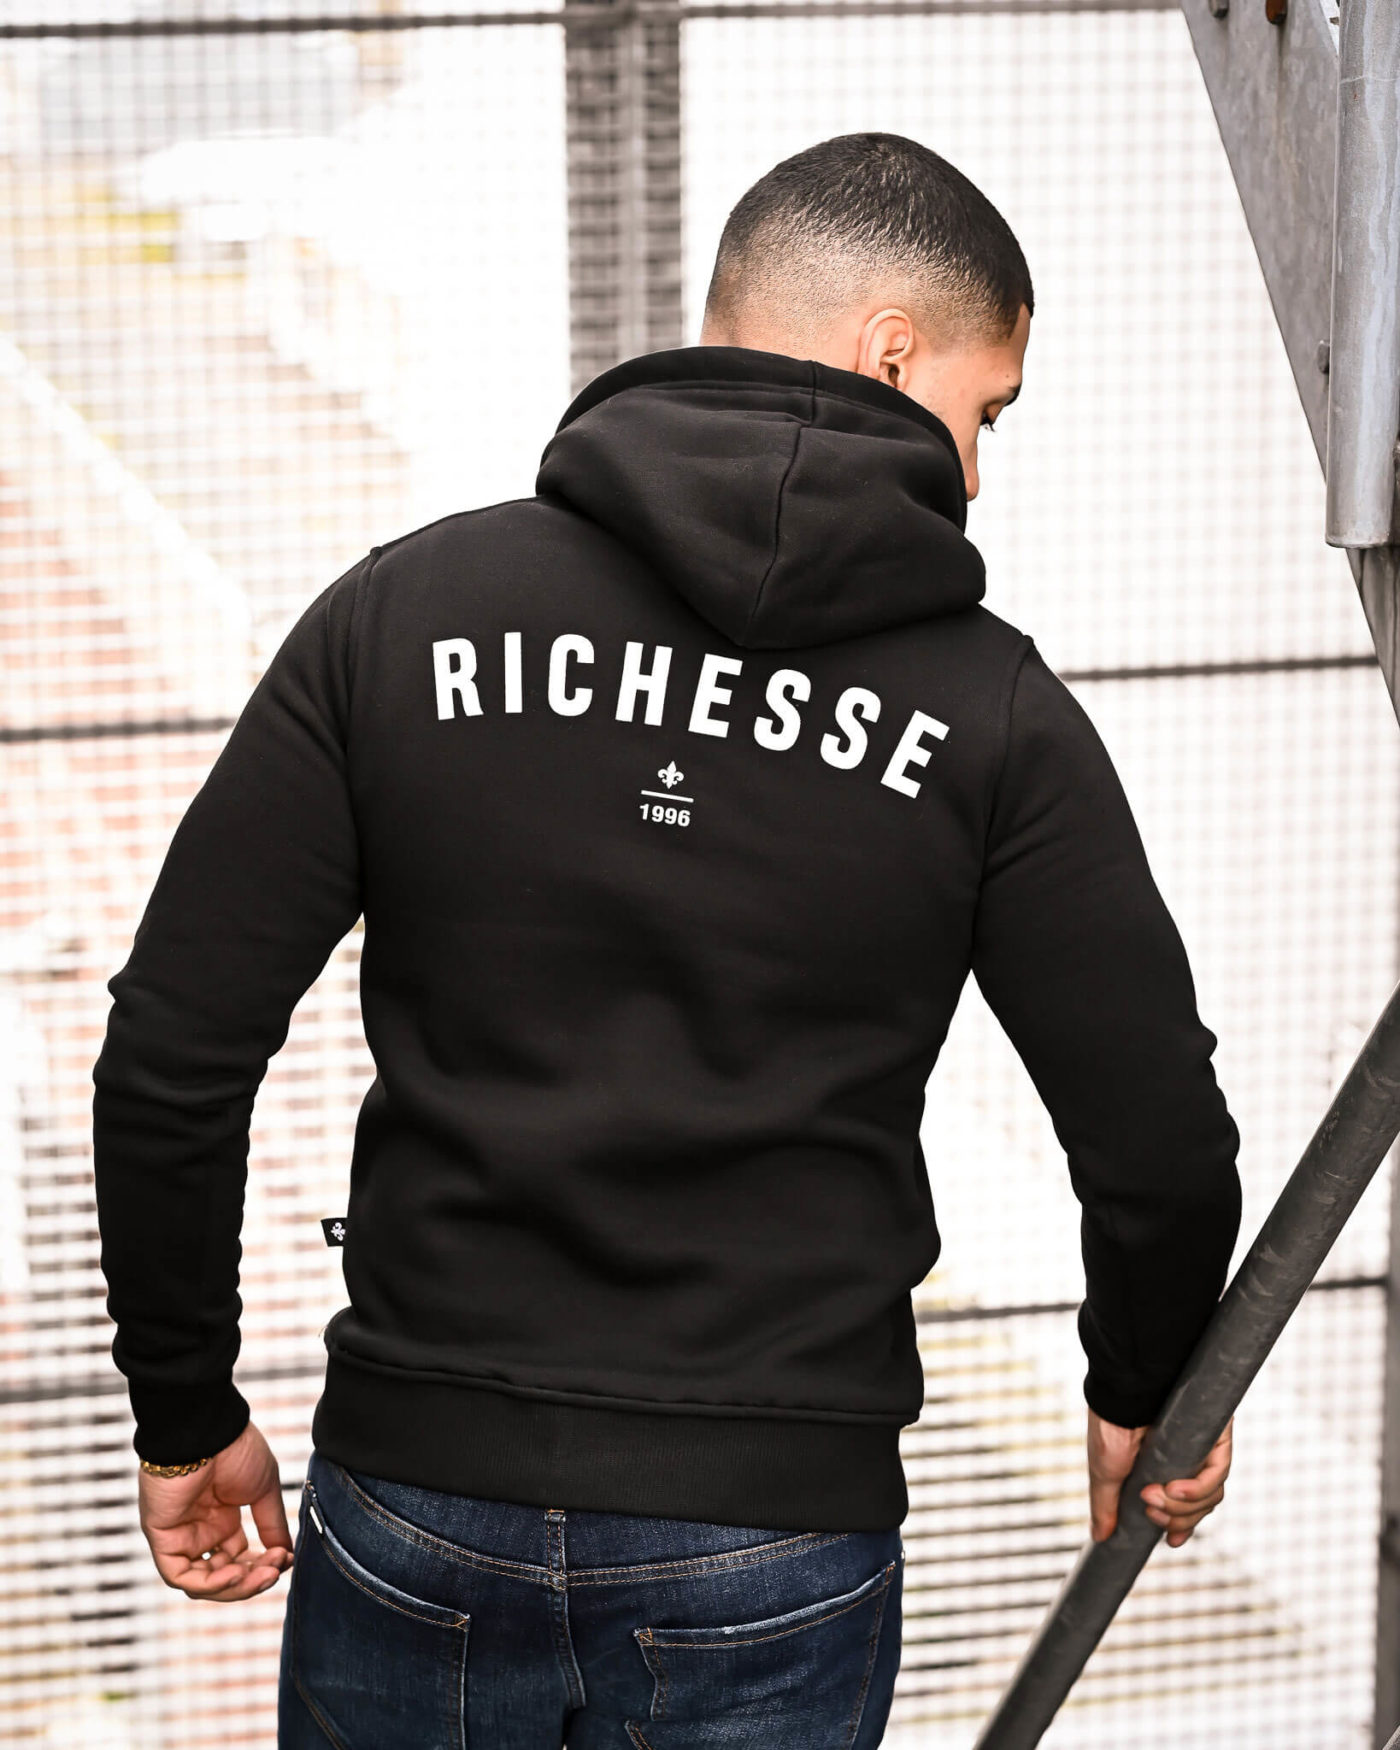 Richesse-Brand-Back-1